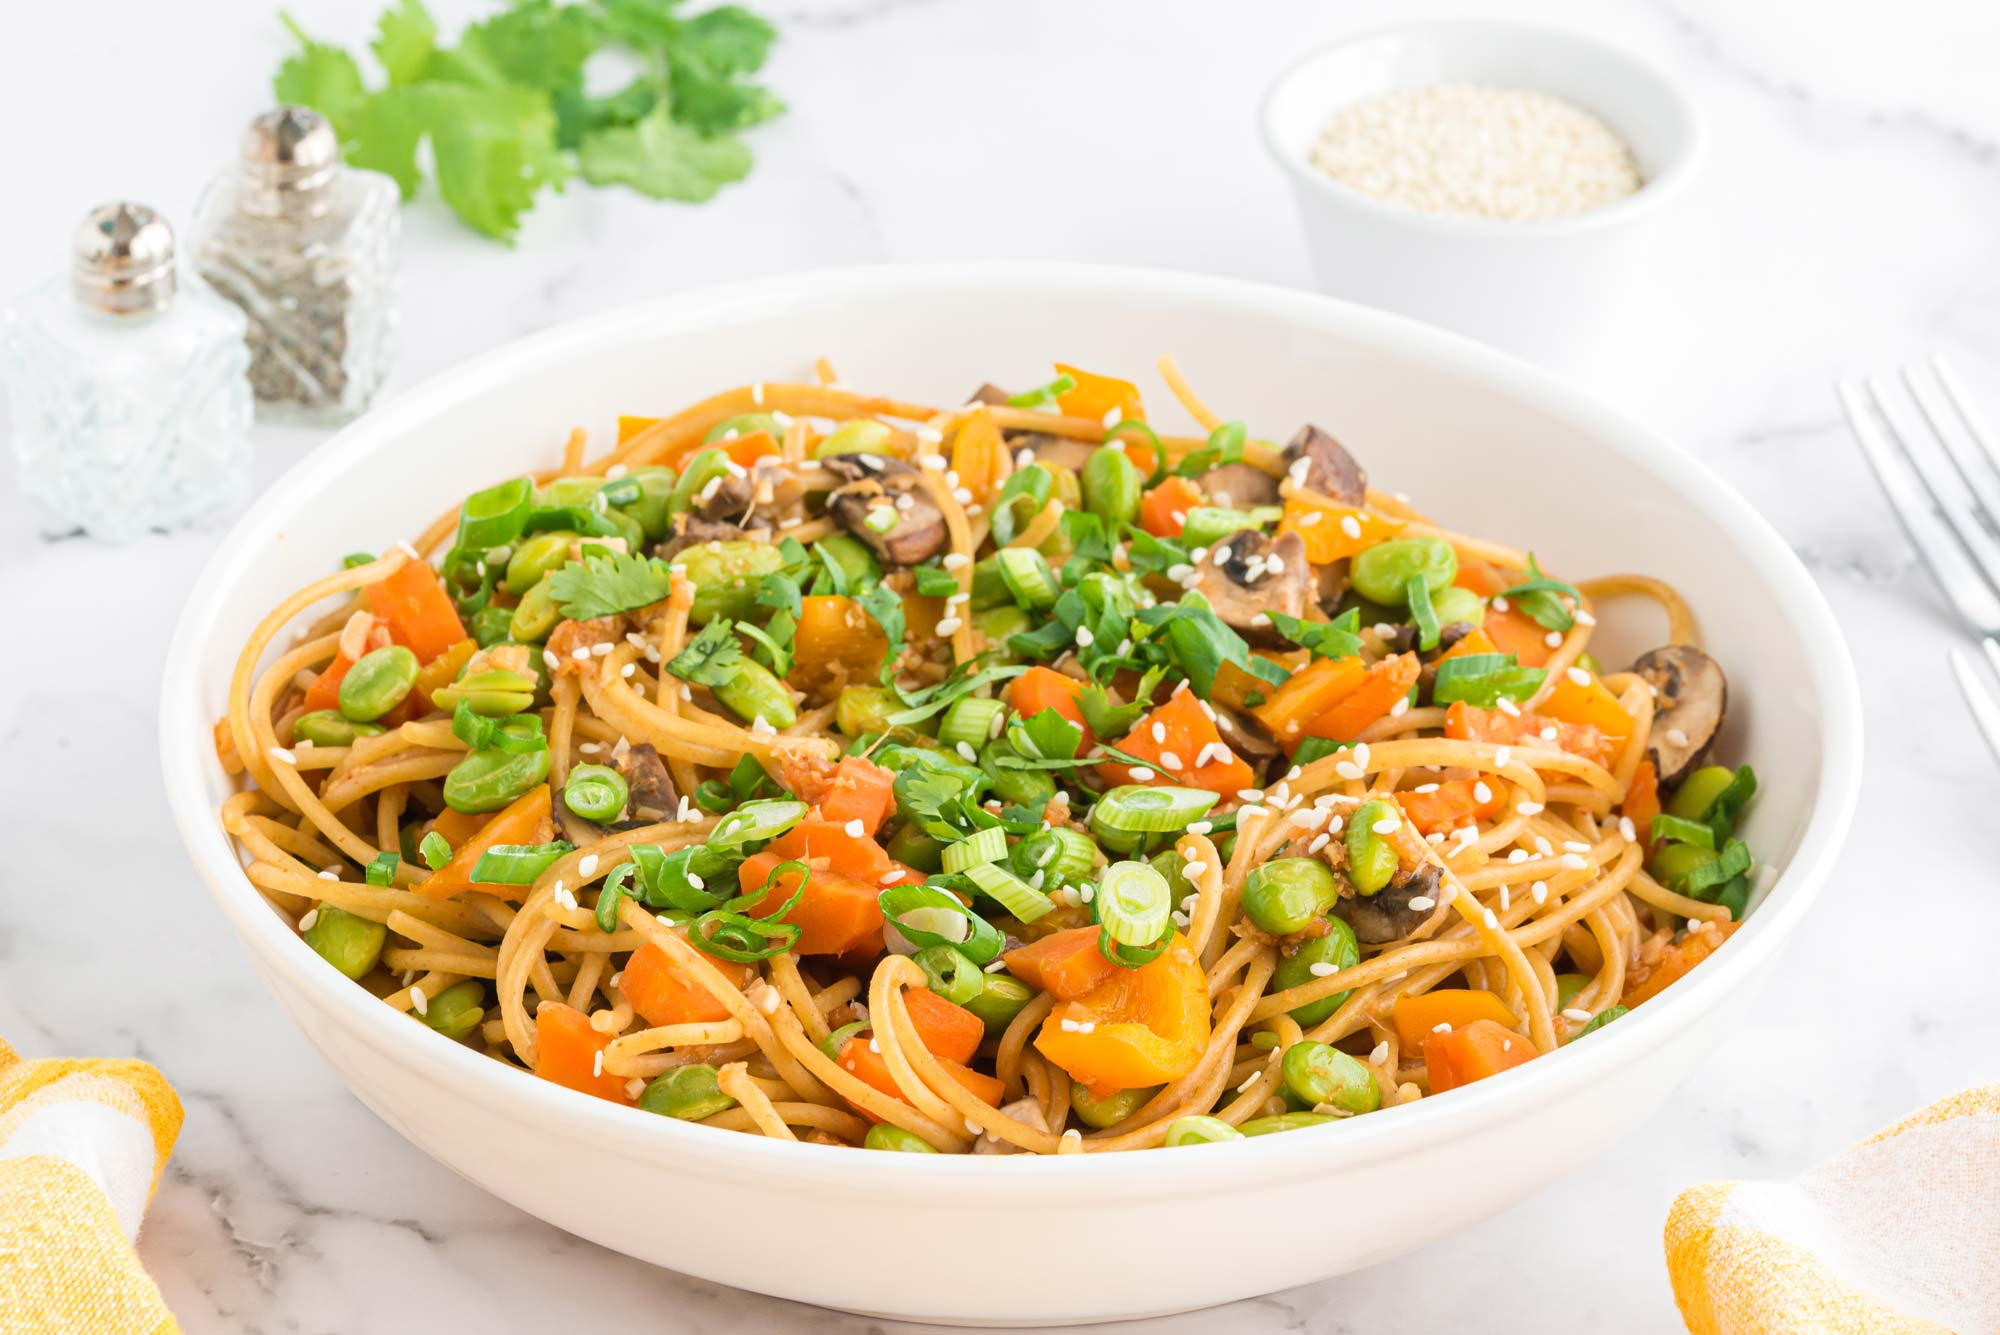 Ginger carrot edamame noodles - Anxiety self help recipe